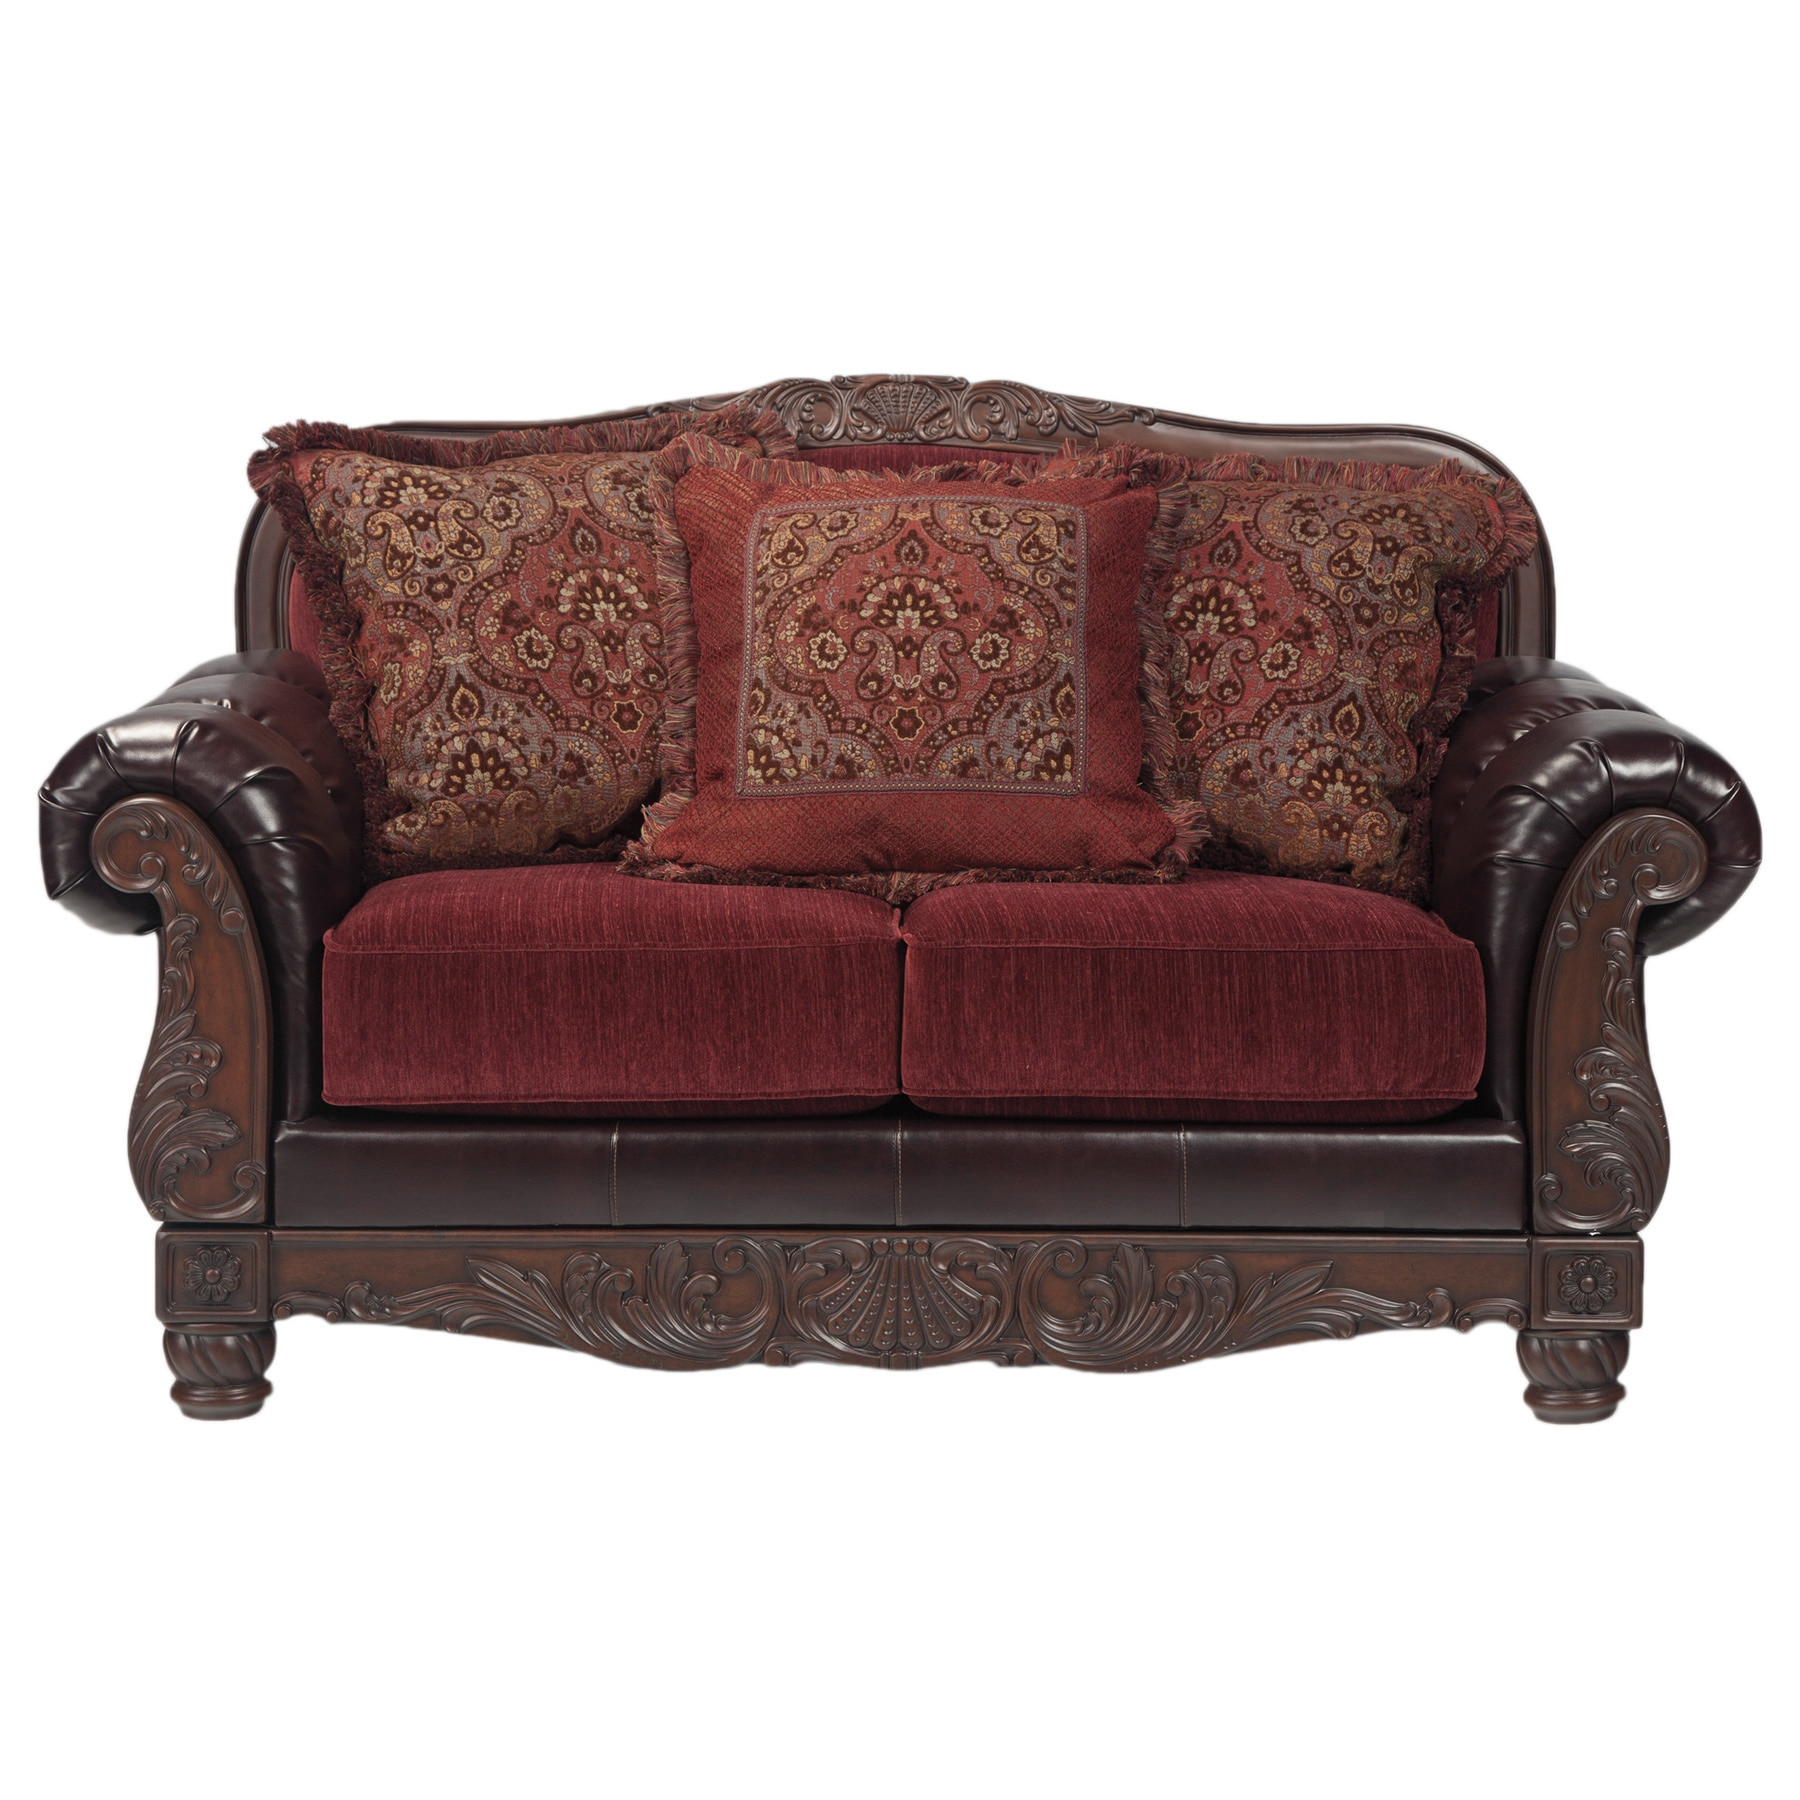 Signature Design By Ashley Weslynn Place Burgundy Loveseat With Accent Pillows Free Shipping Today 8896181